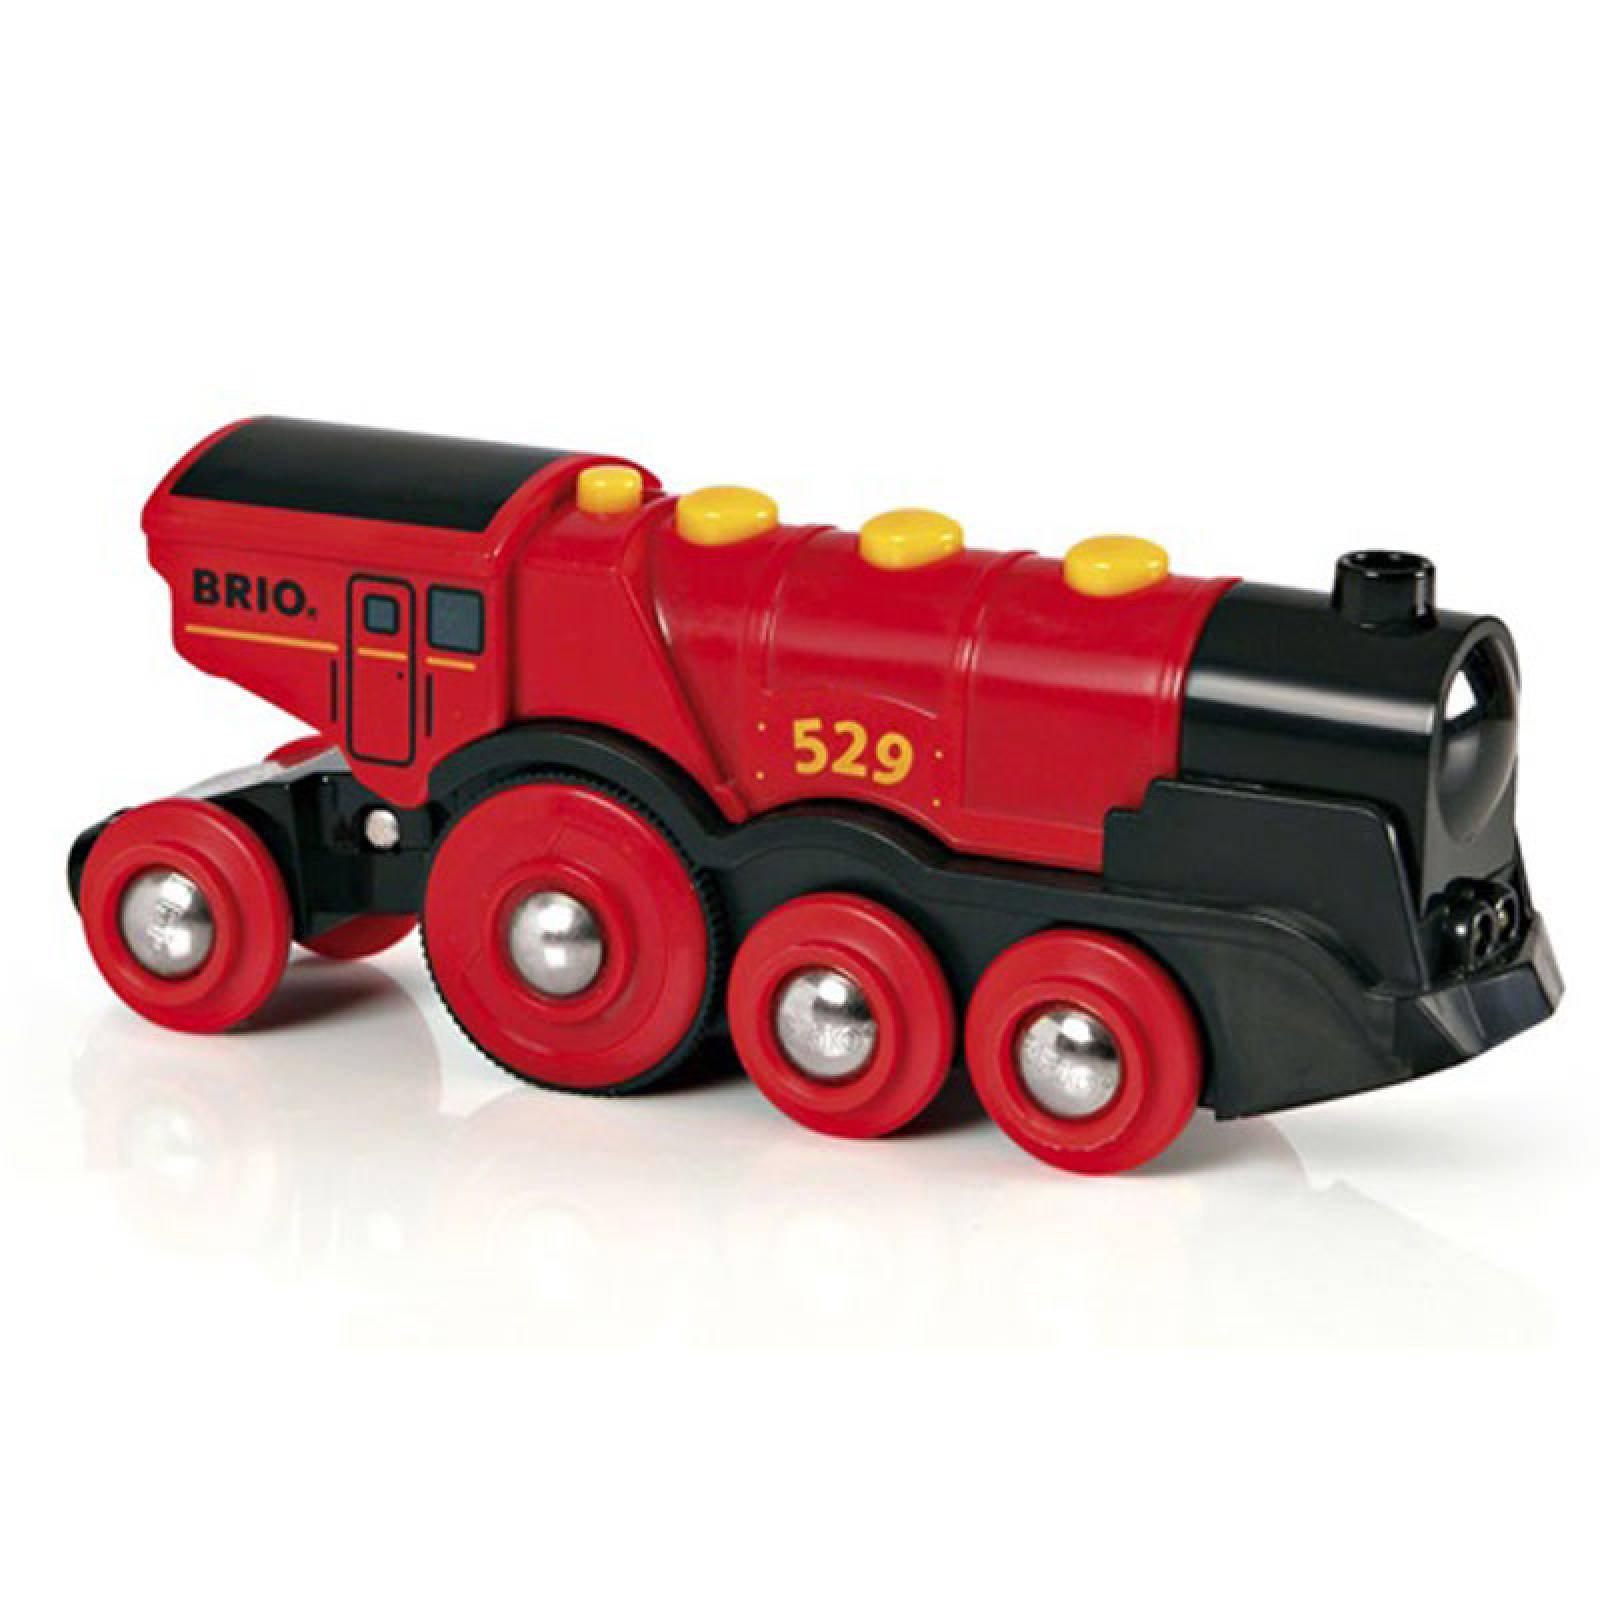 Mighty Red Action Locomotive Train BRIO® Wooden Railway Age 3+